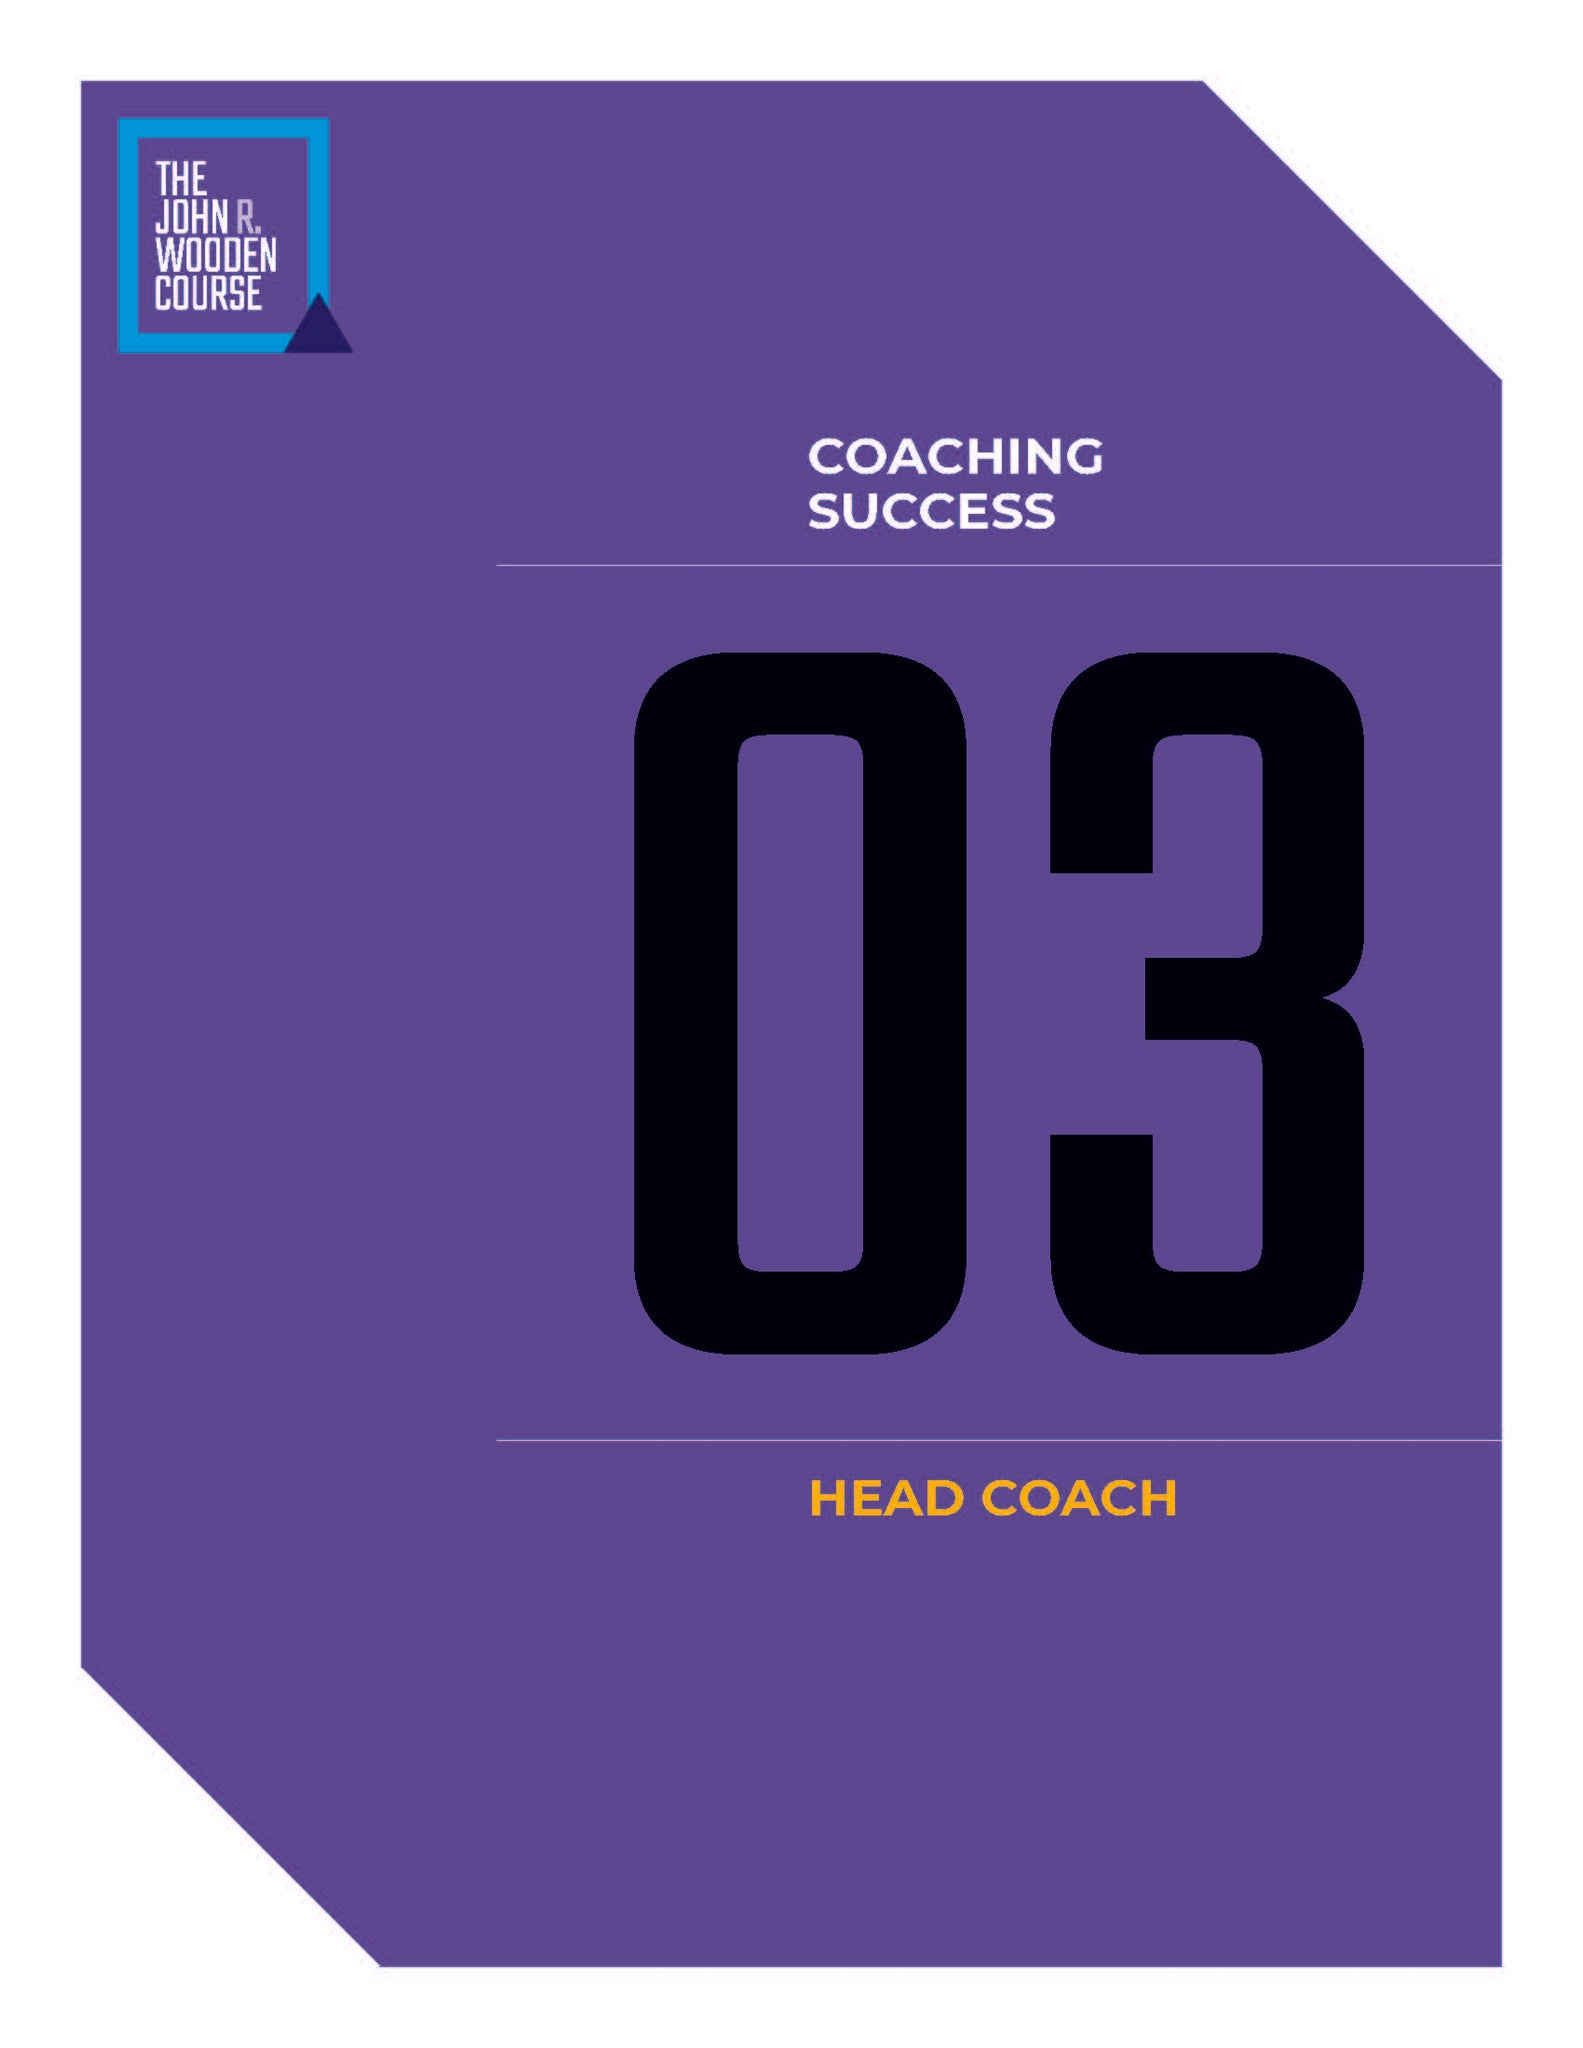 John Wooden's Coaching Course - Head Coach